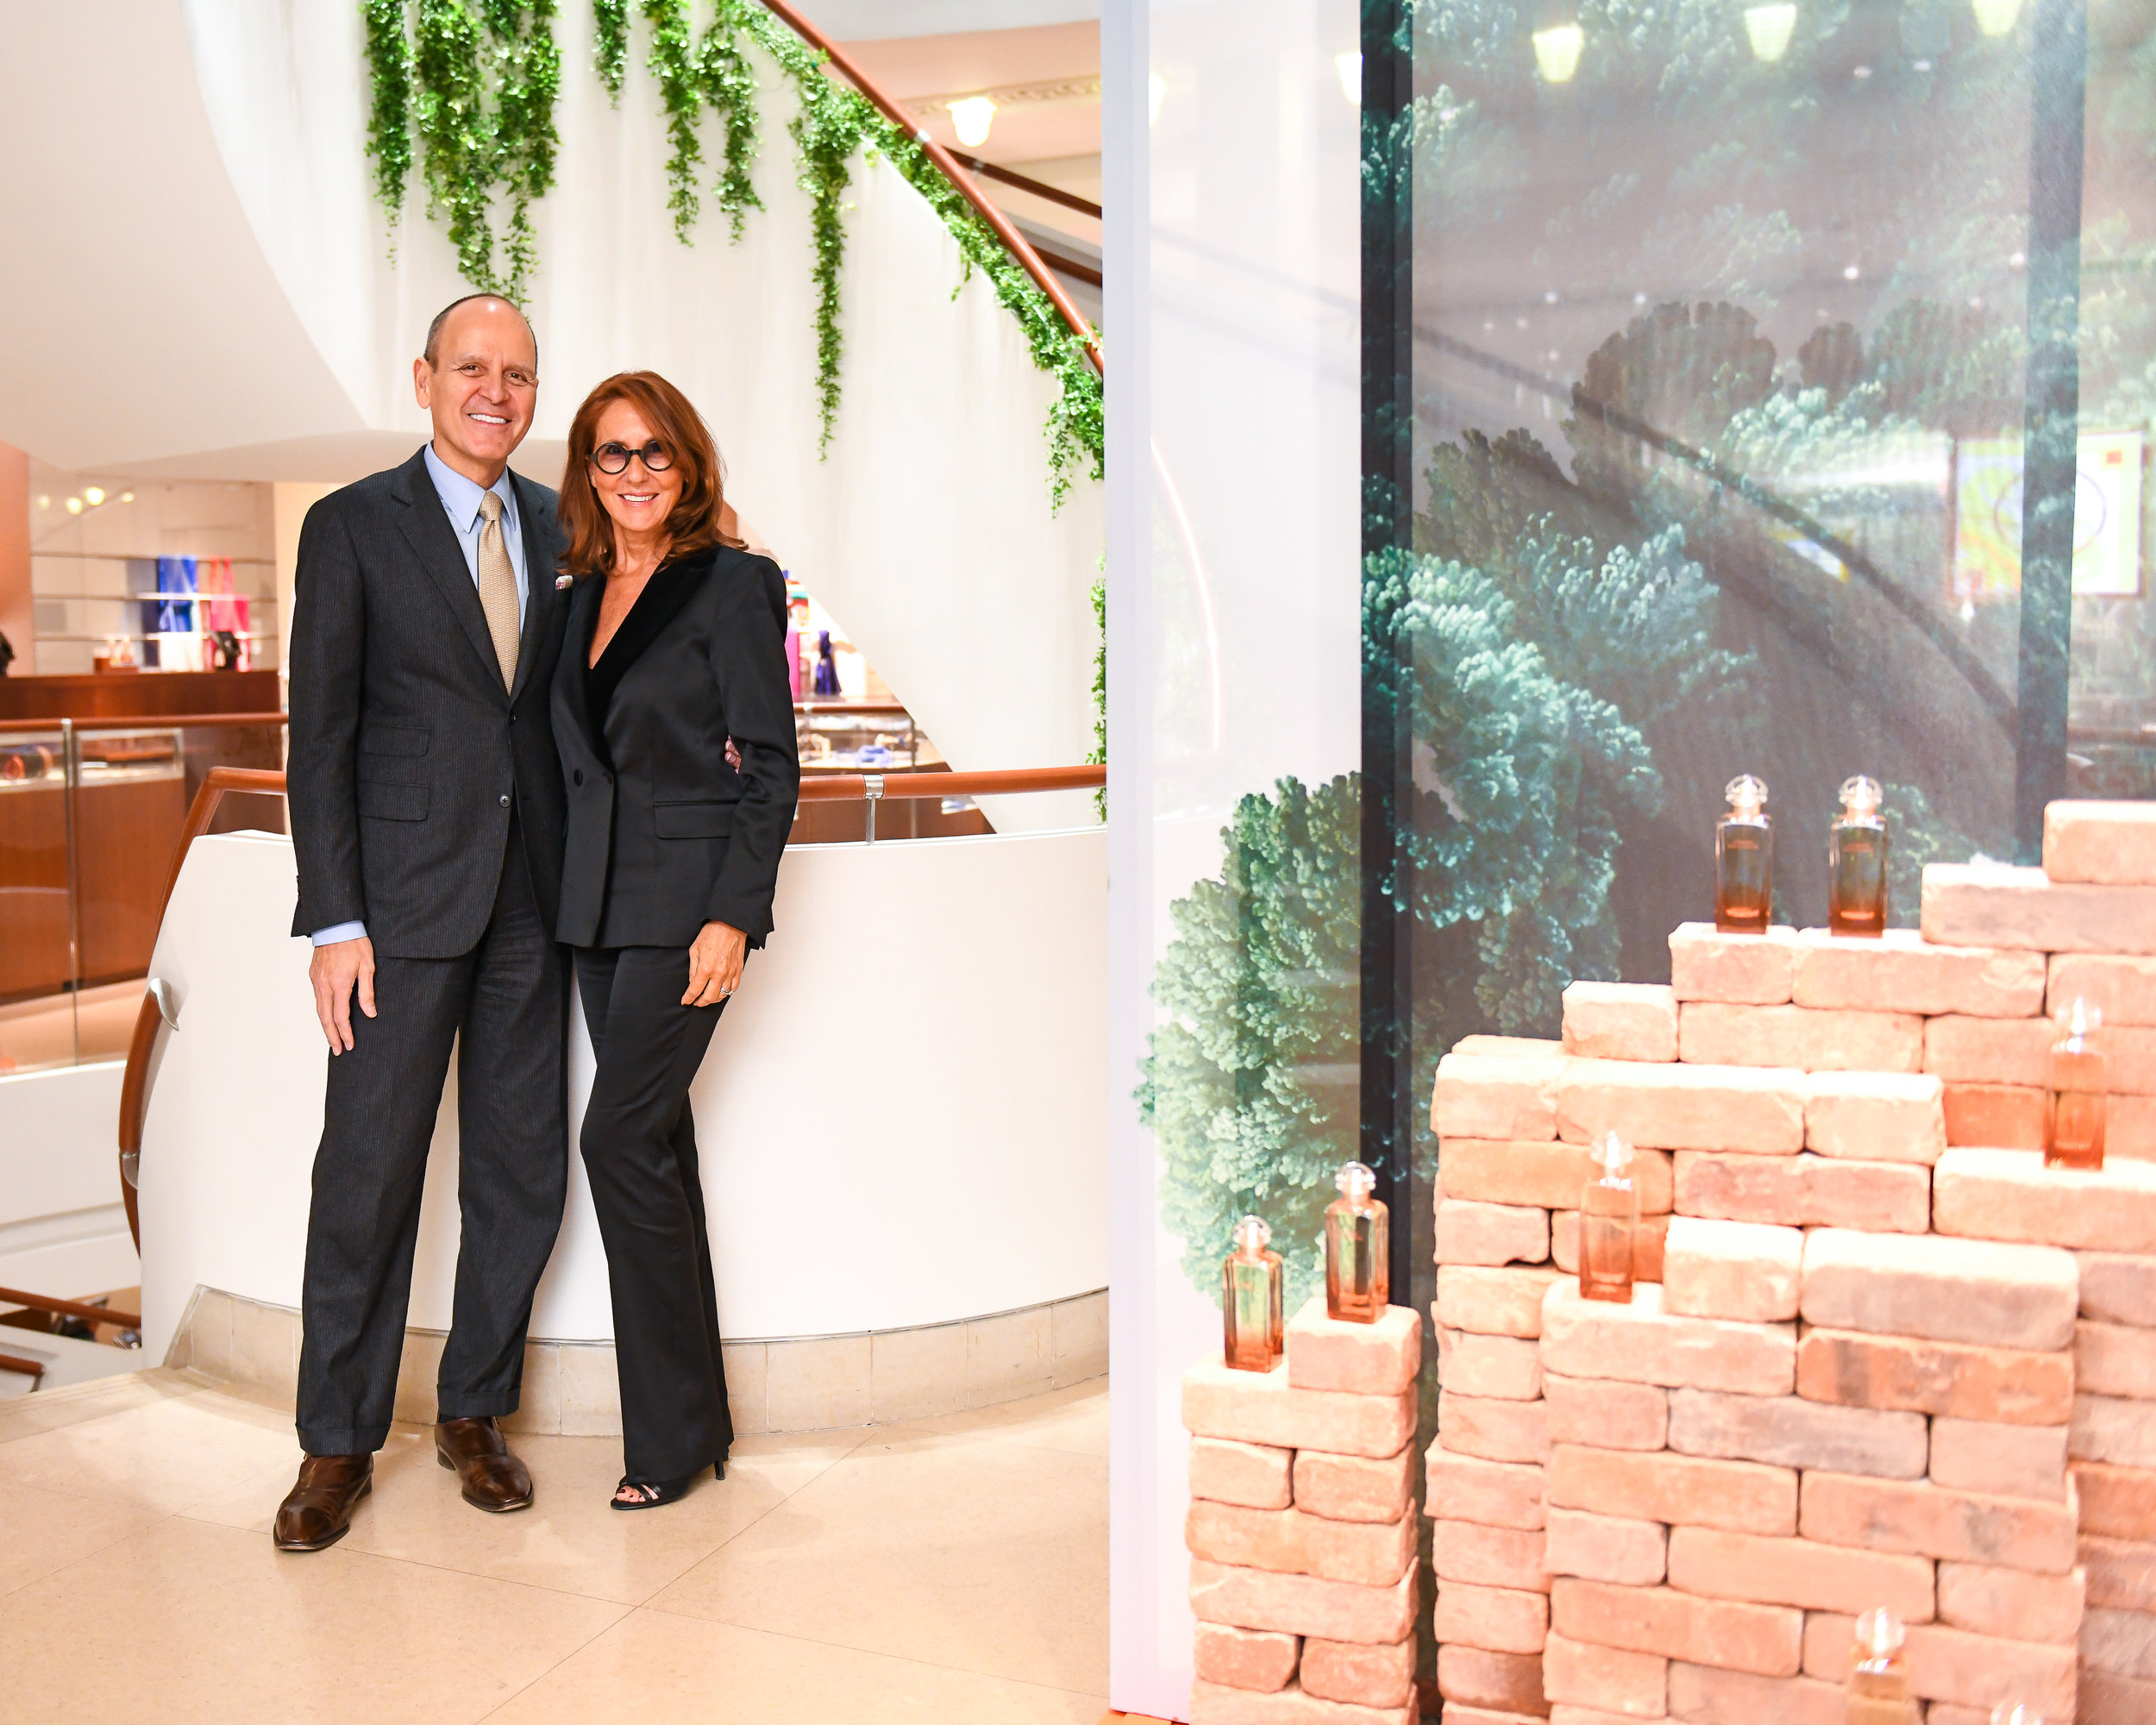 Robert Chavez, the U.S. President and CEO of Hermès, Paris, with perfumer Christine Nagel at the latest fragrance launch dinner at Hermès on Madison Avenue, N.Y.C. Portraits by BFA.